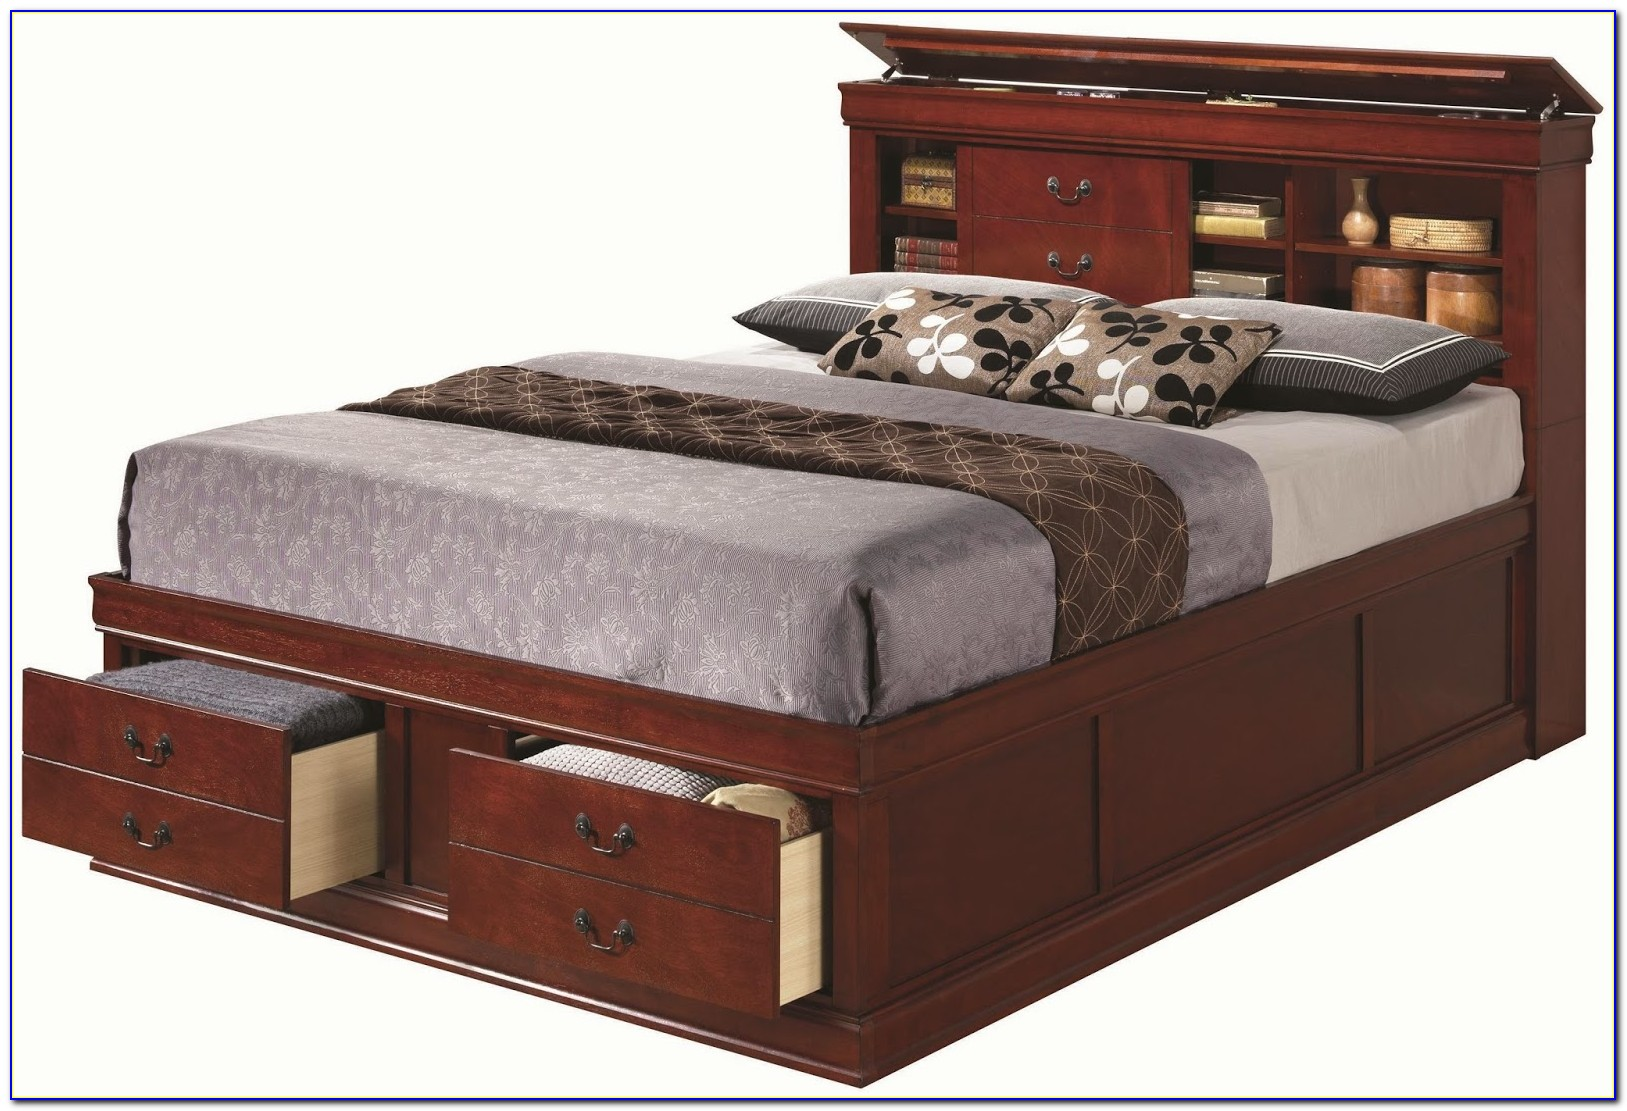 Headboards With Storage For King Size Beds